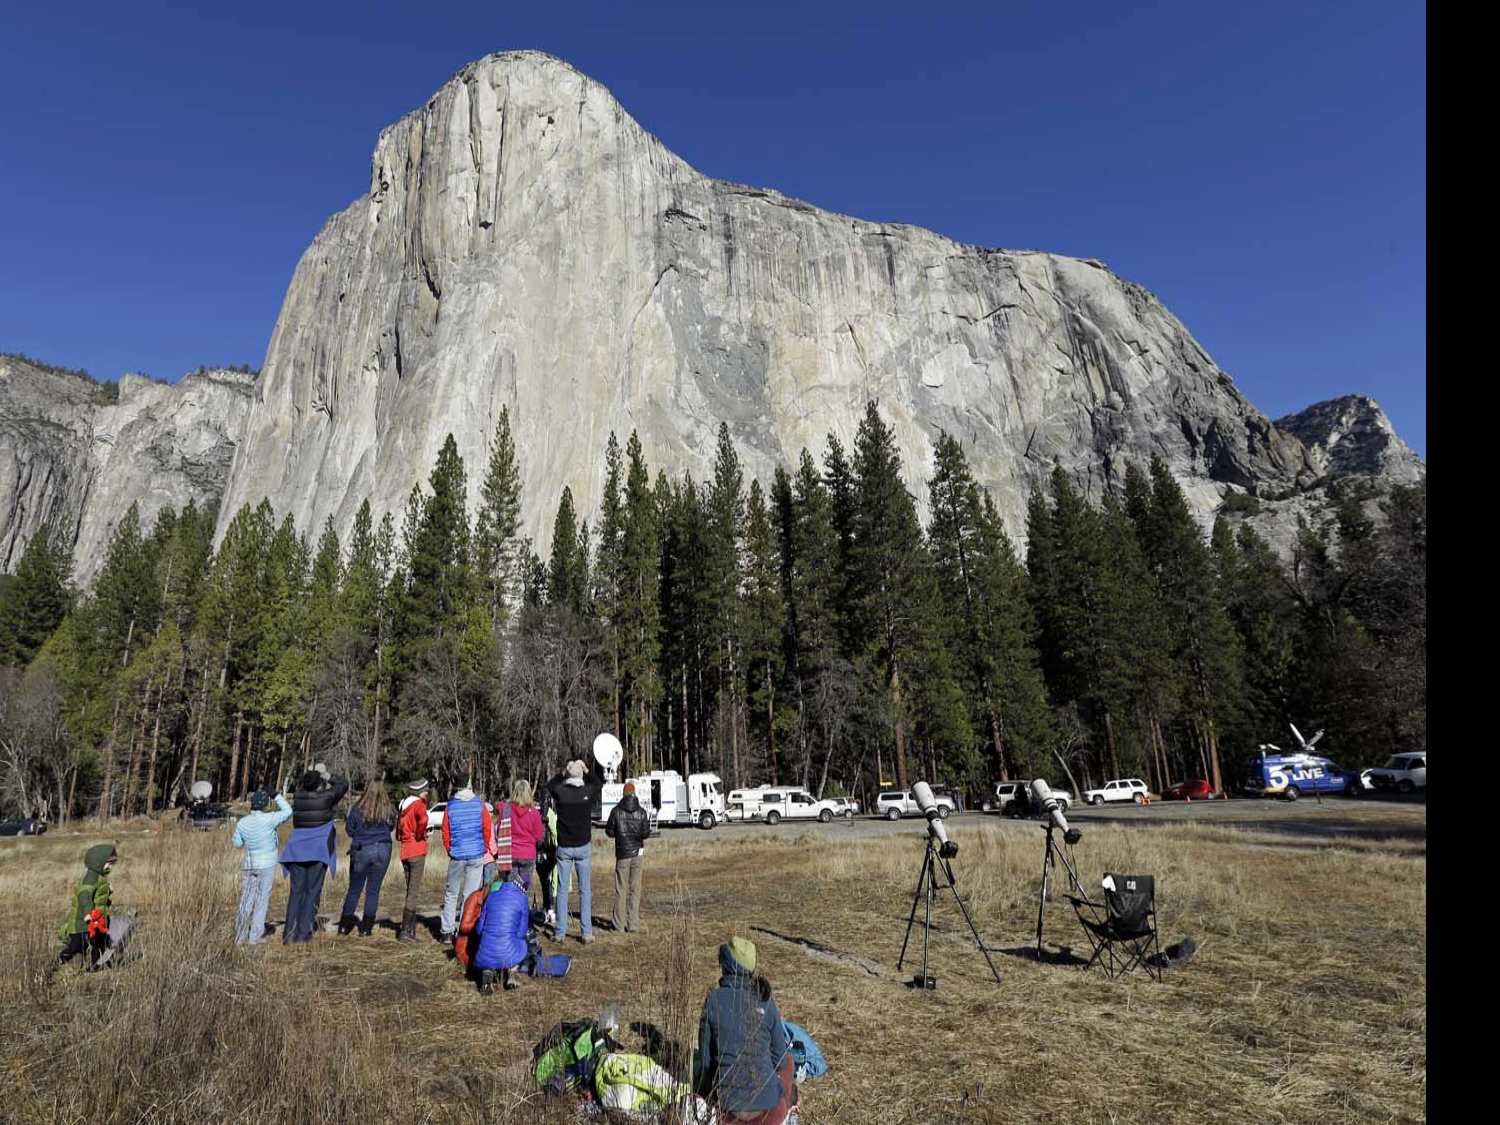 Interior Dept. Backs Away From National Parks Fee Hikes